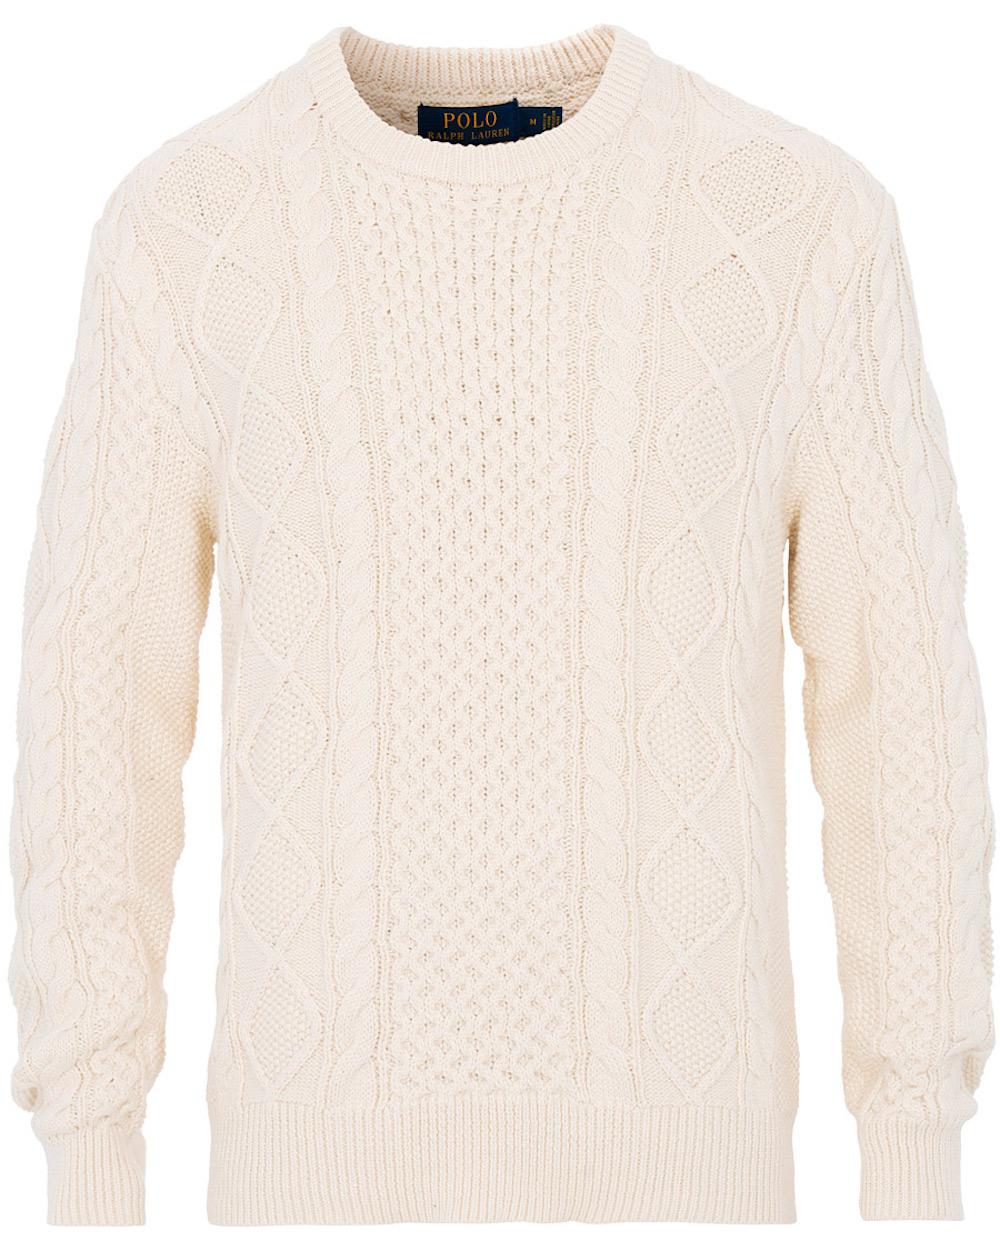 Polo Ralph Lauren Señores Suéter Cream Cable Classic Sweater 710766783003 Ebay